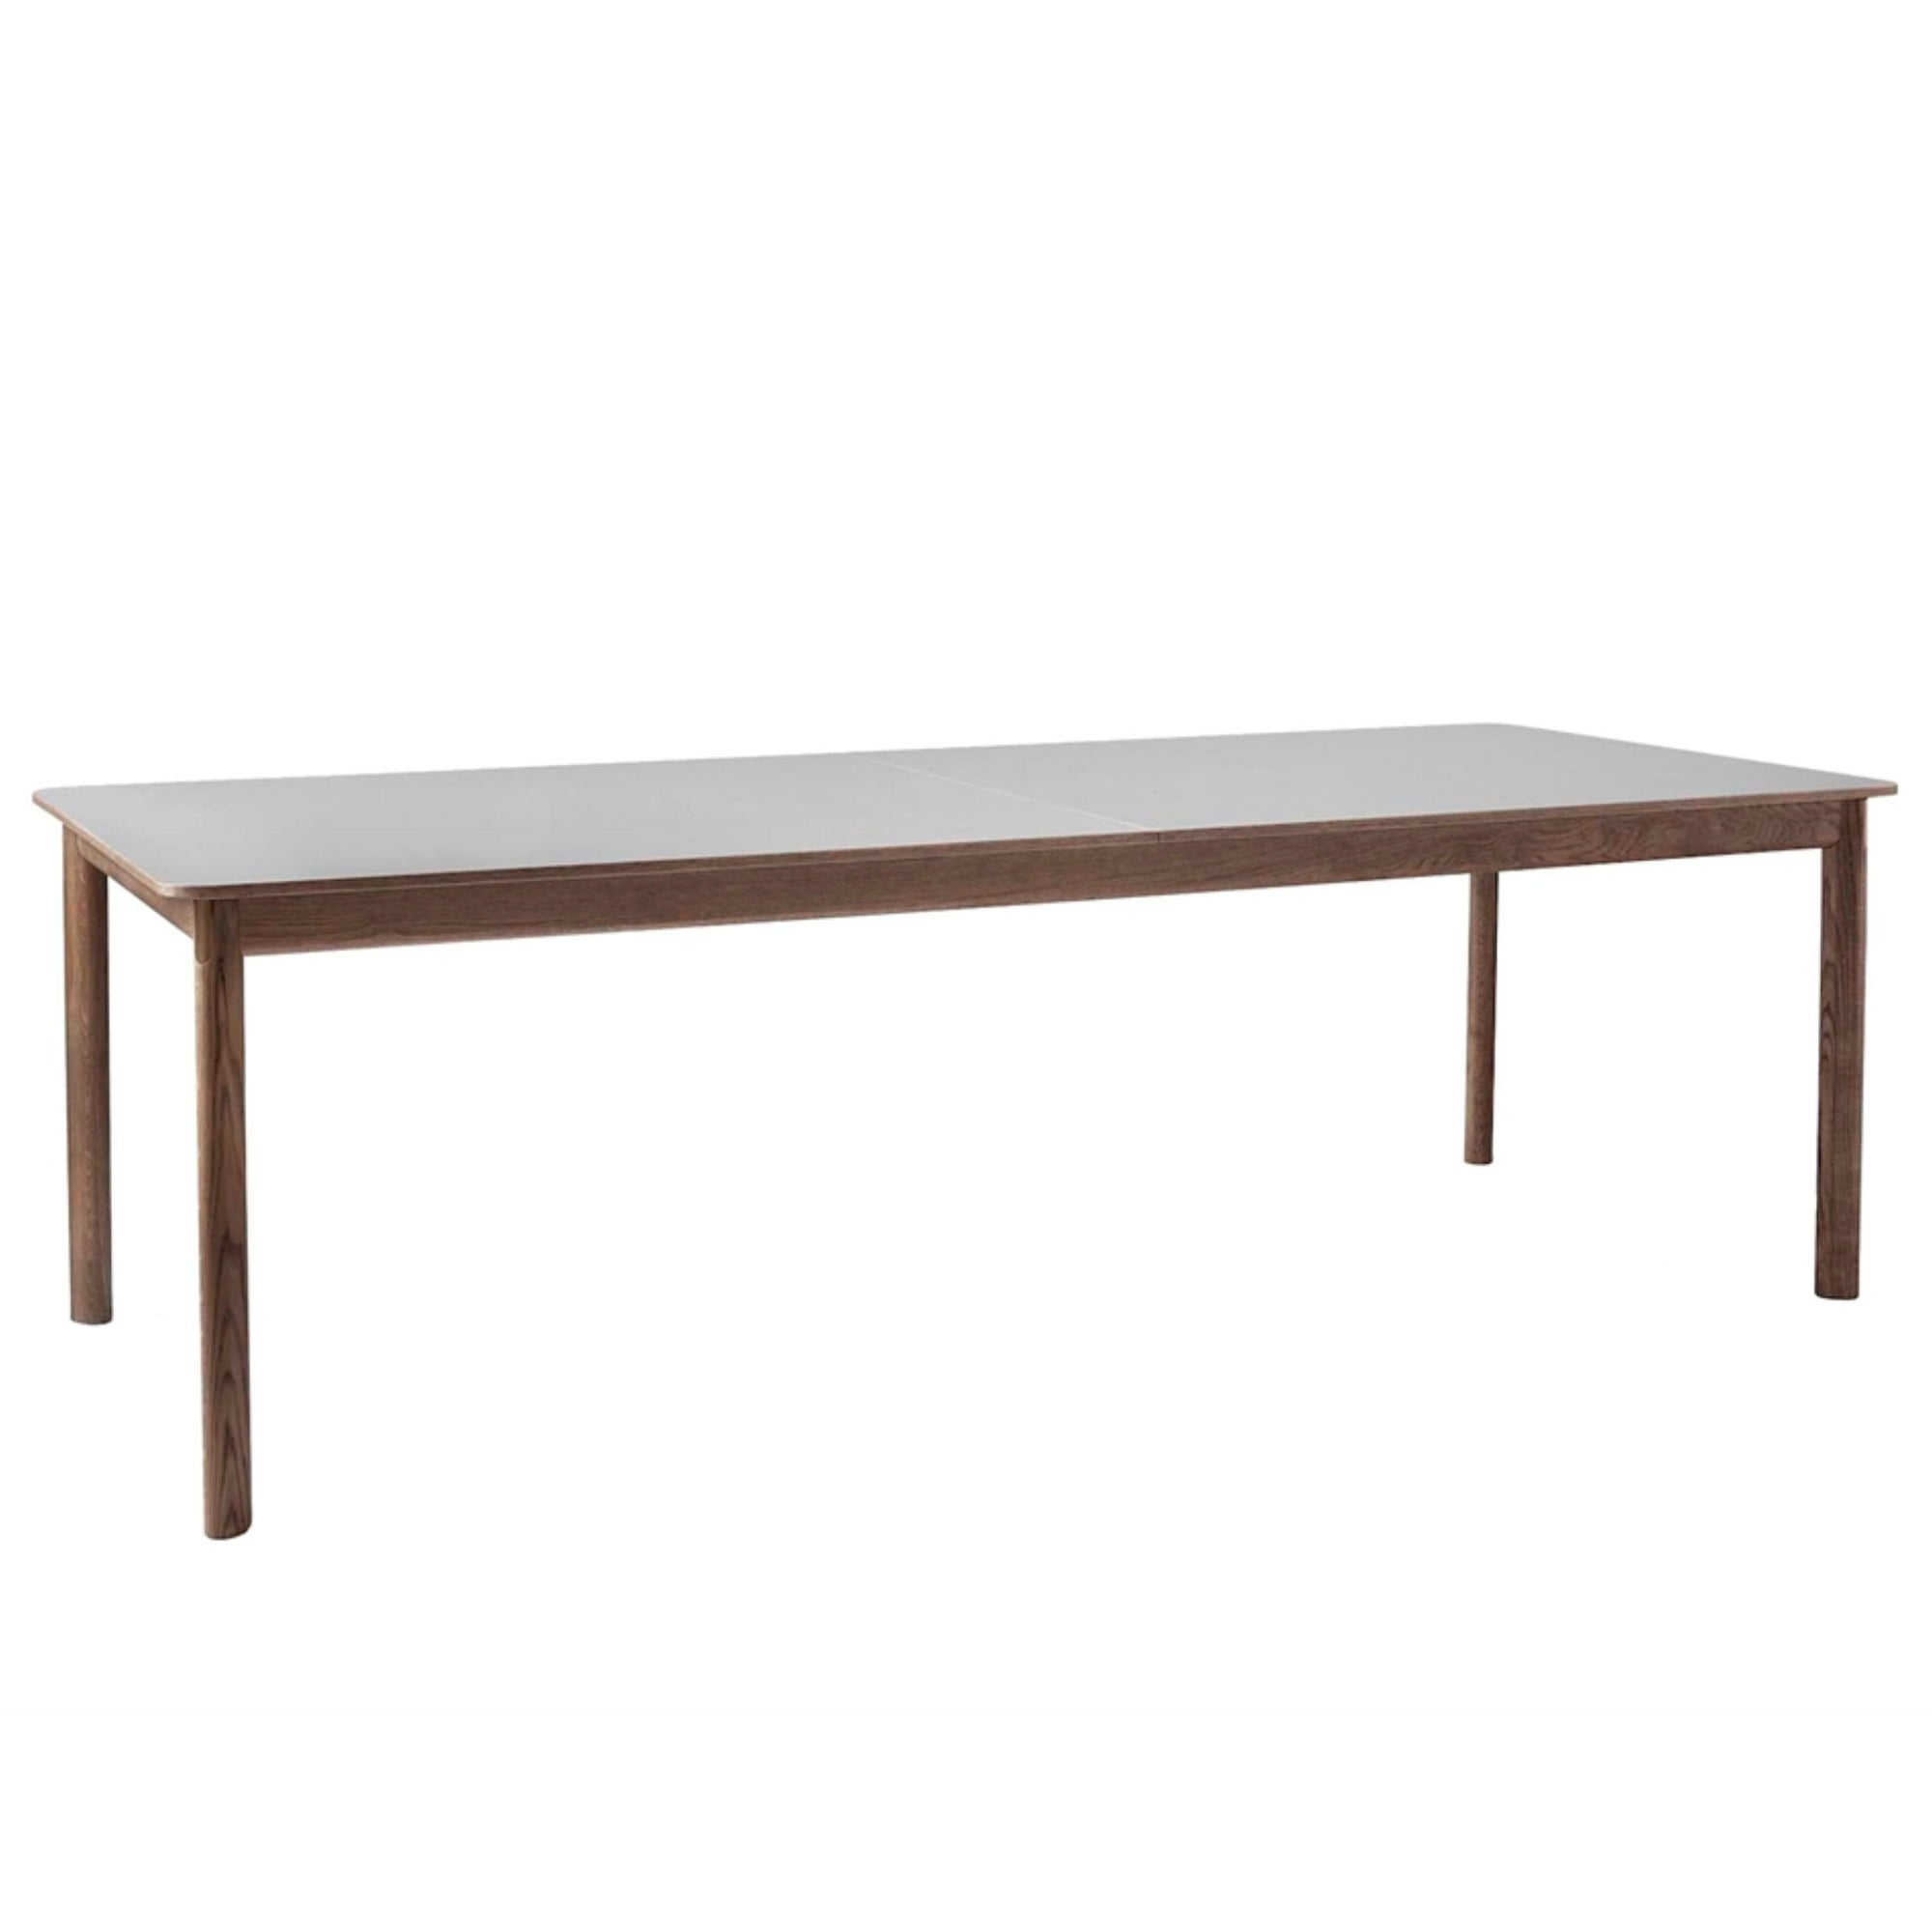 &Tradition Patch HW2 extendable table, smoked oak